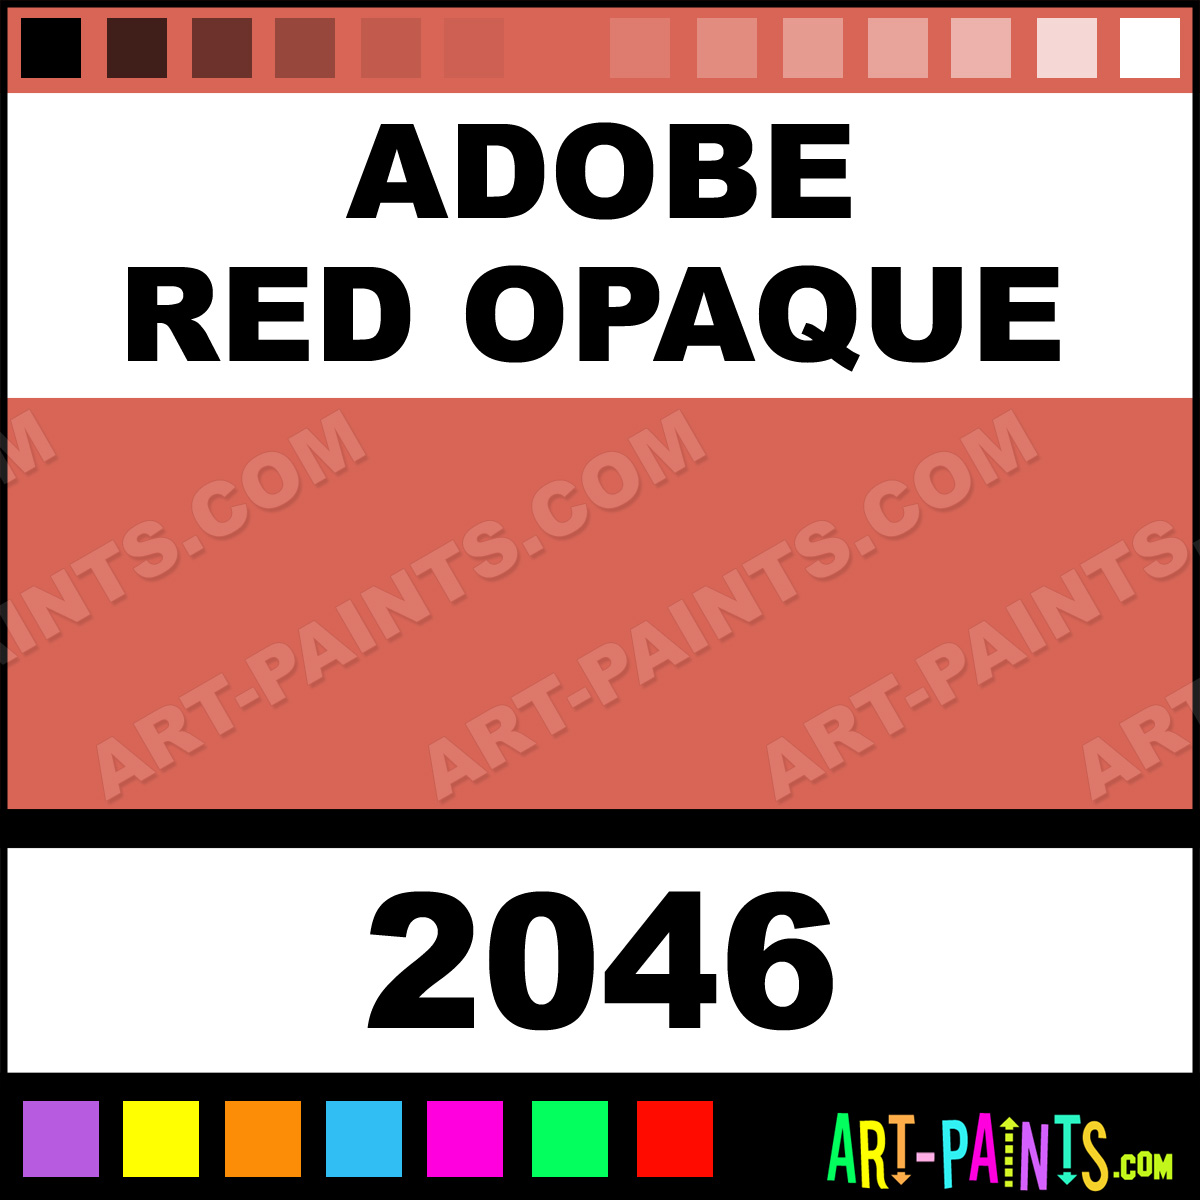 Adobe red opaque ceramcoat acrylic paints 2046 adobe red adobe red nvjuhfo Choice Image